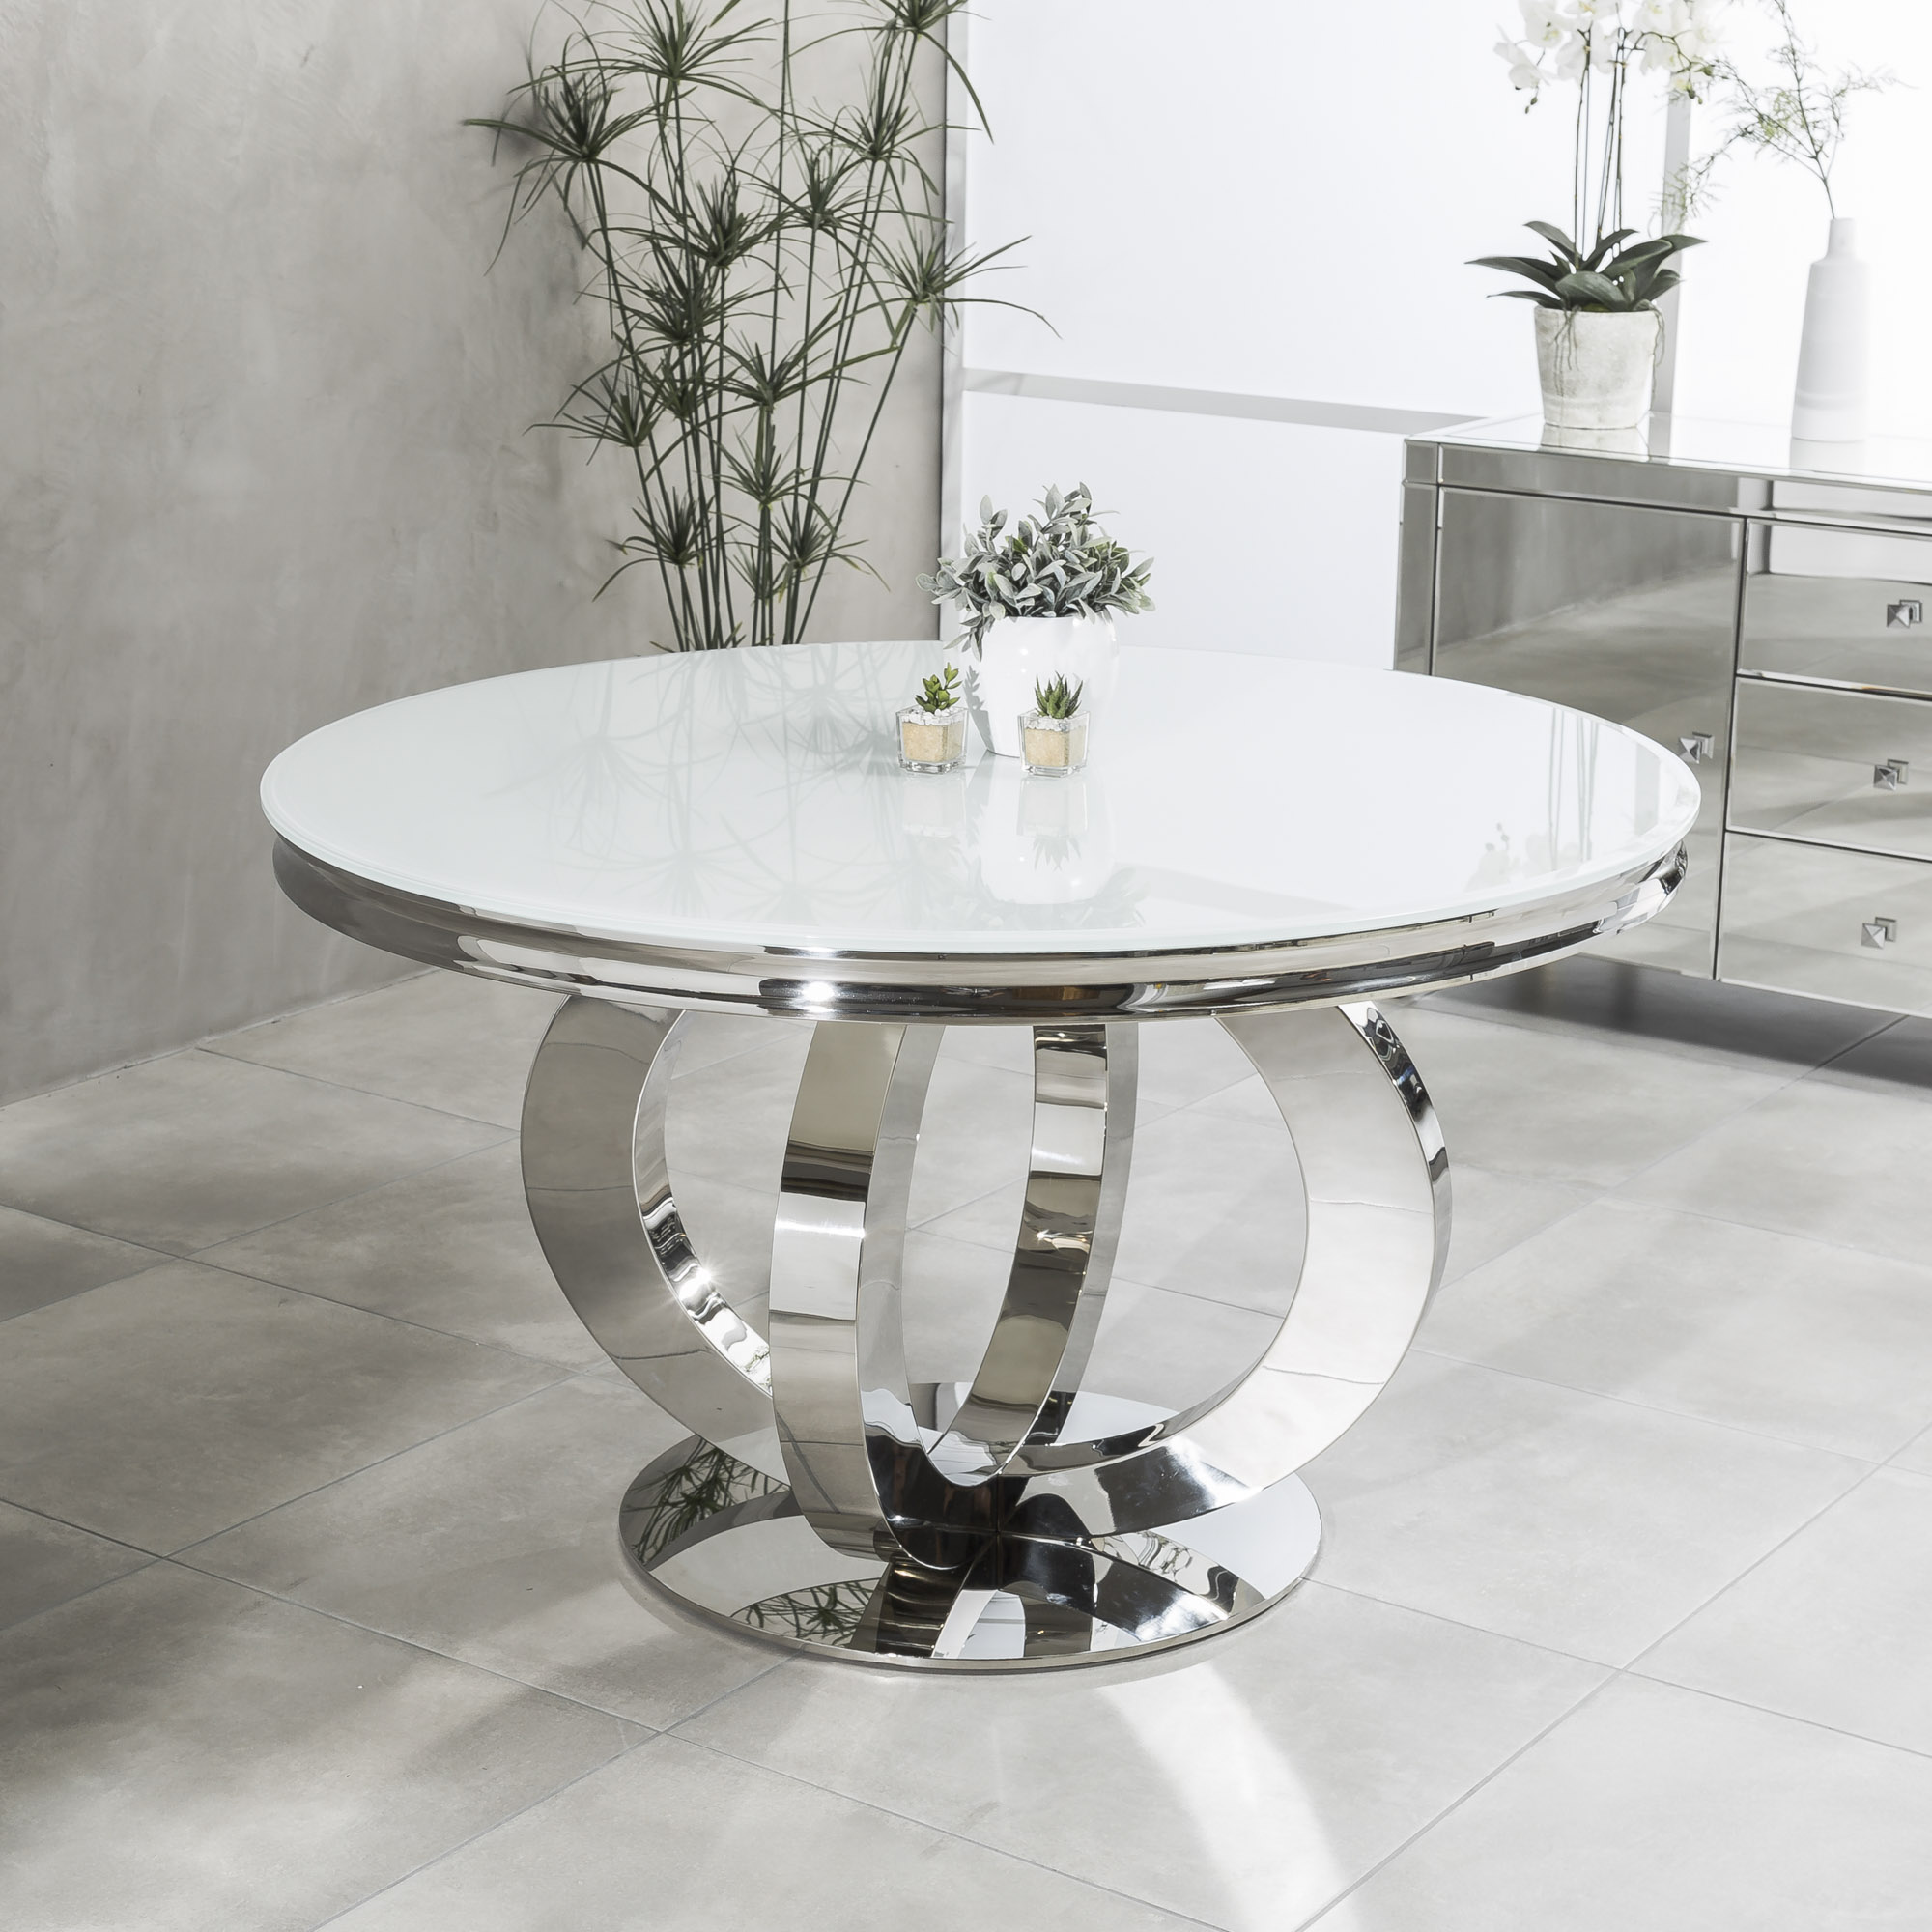 1.3m Circular Polished Steel Dining White Glass Table Set with 4 Grey Brushed Velvet Dining Chairs